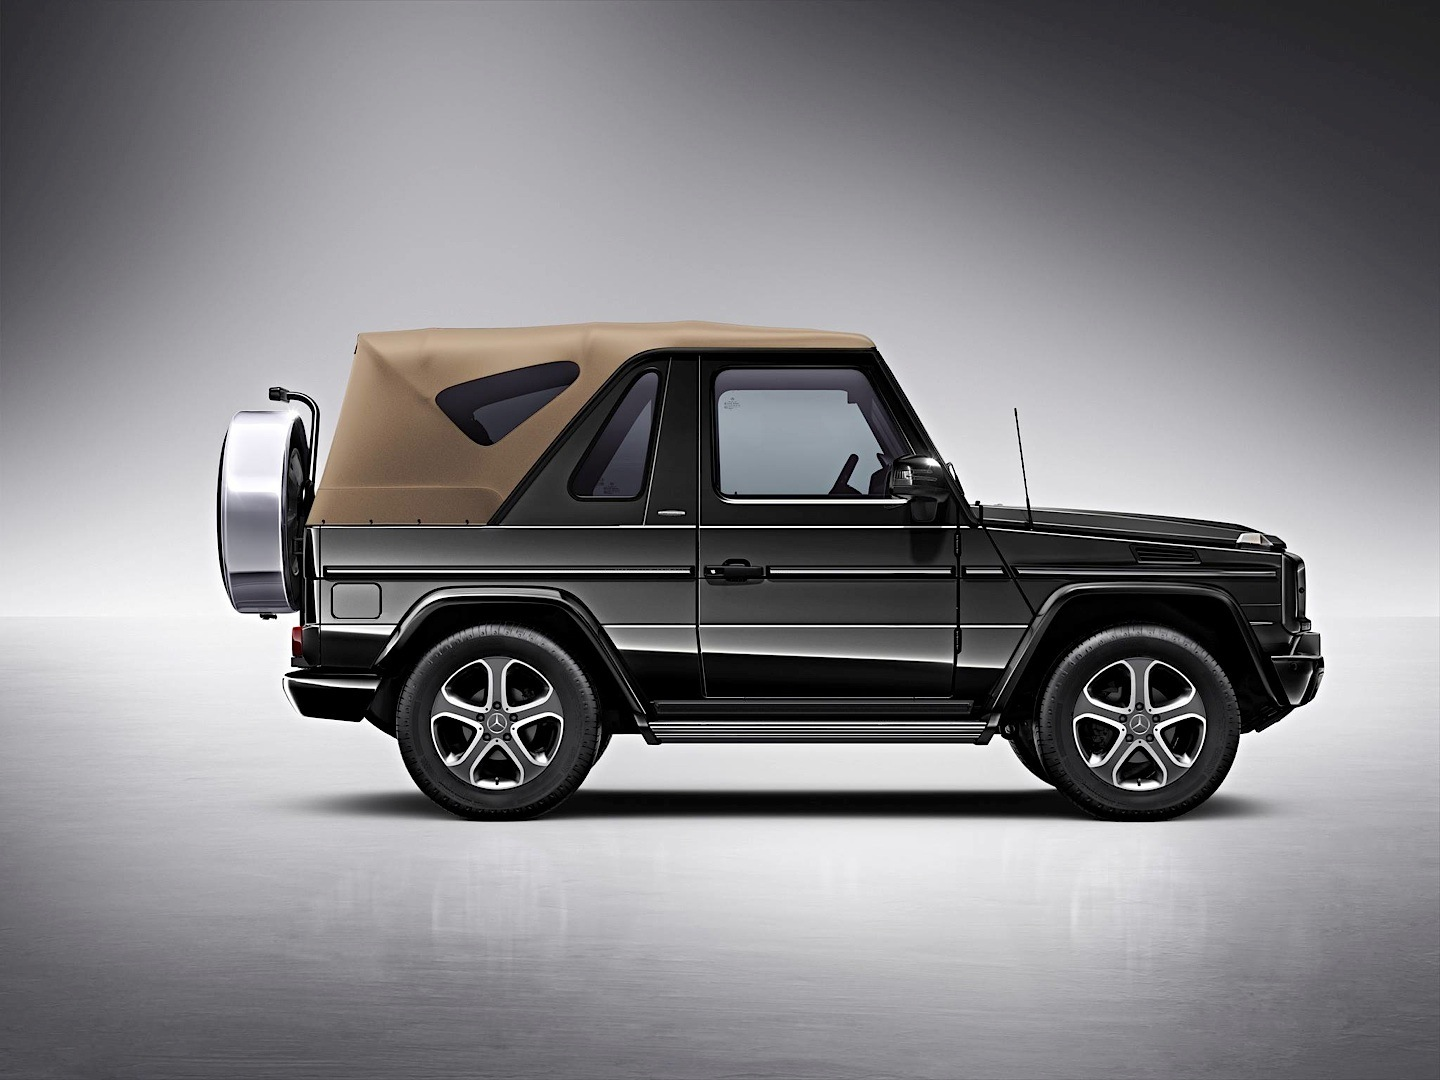 Say goodbye to the g class cabriolet model autoevolution for Mercedes benz g500